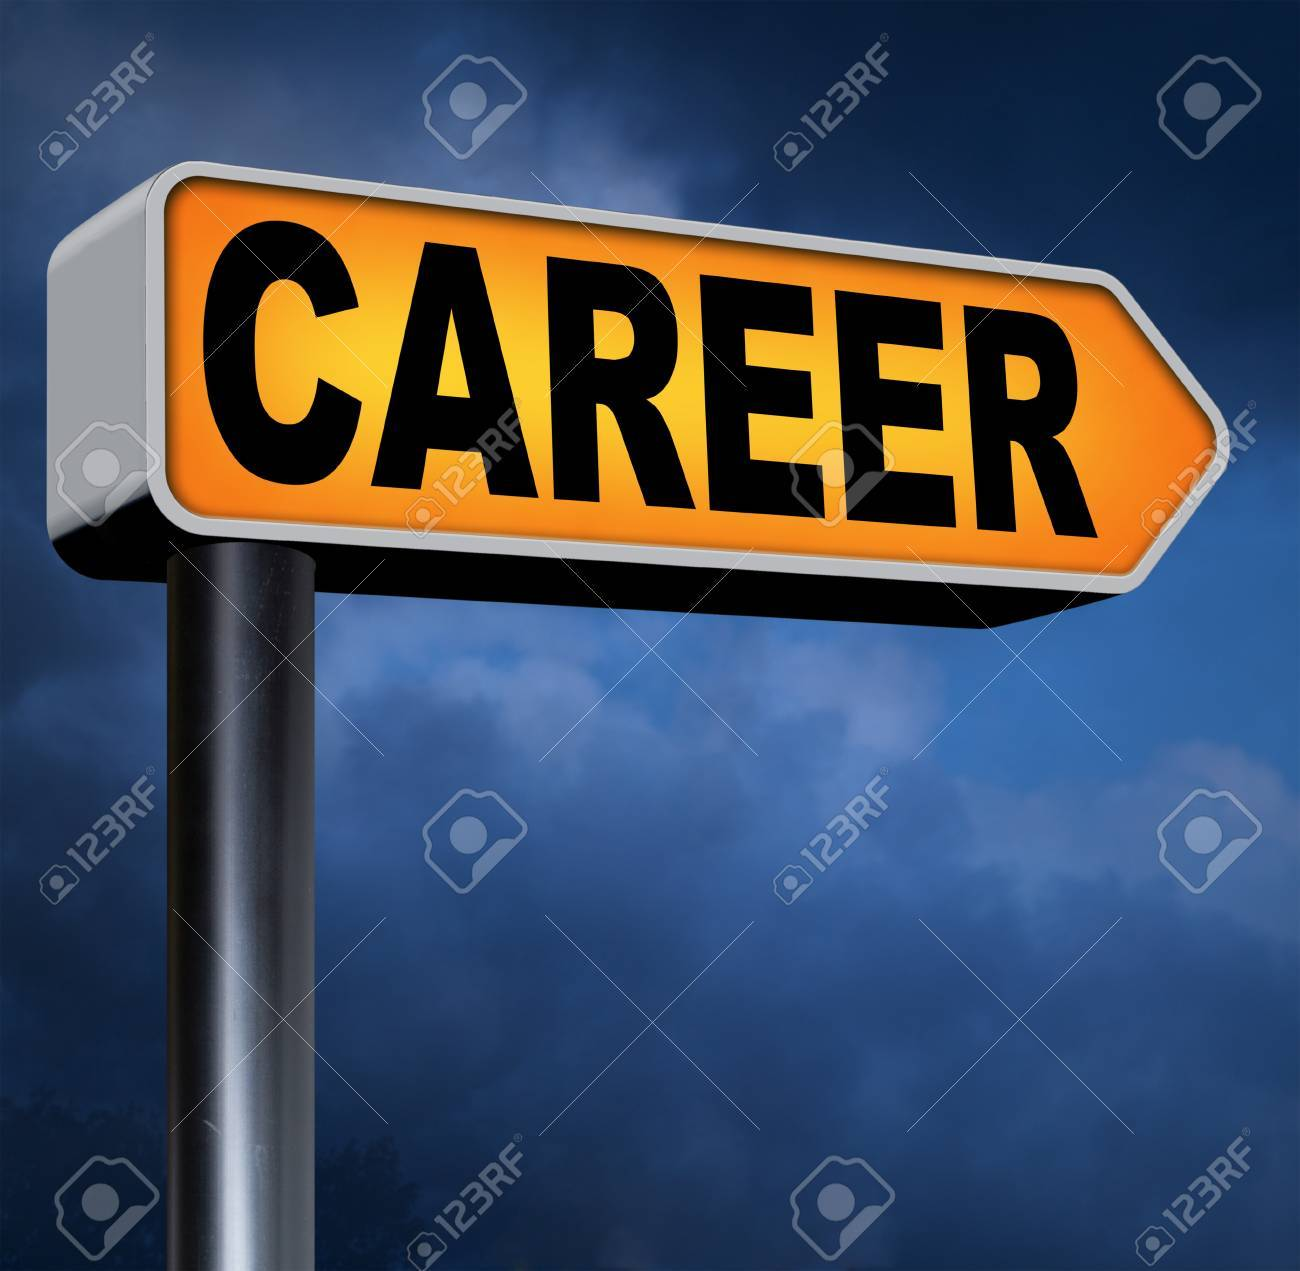 career move or choice get your nice job promotion or the search stock photo career move or choice get your nice job promotion or the search for a new job build a career or job road sign arrow